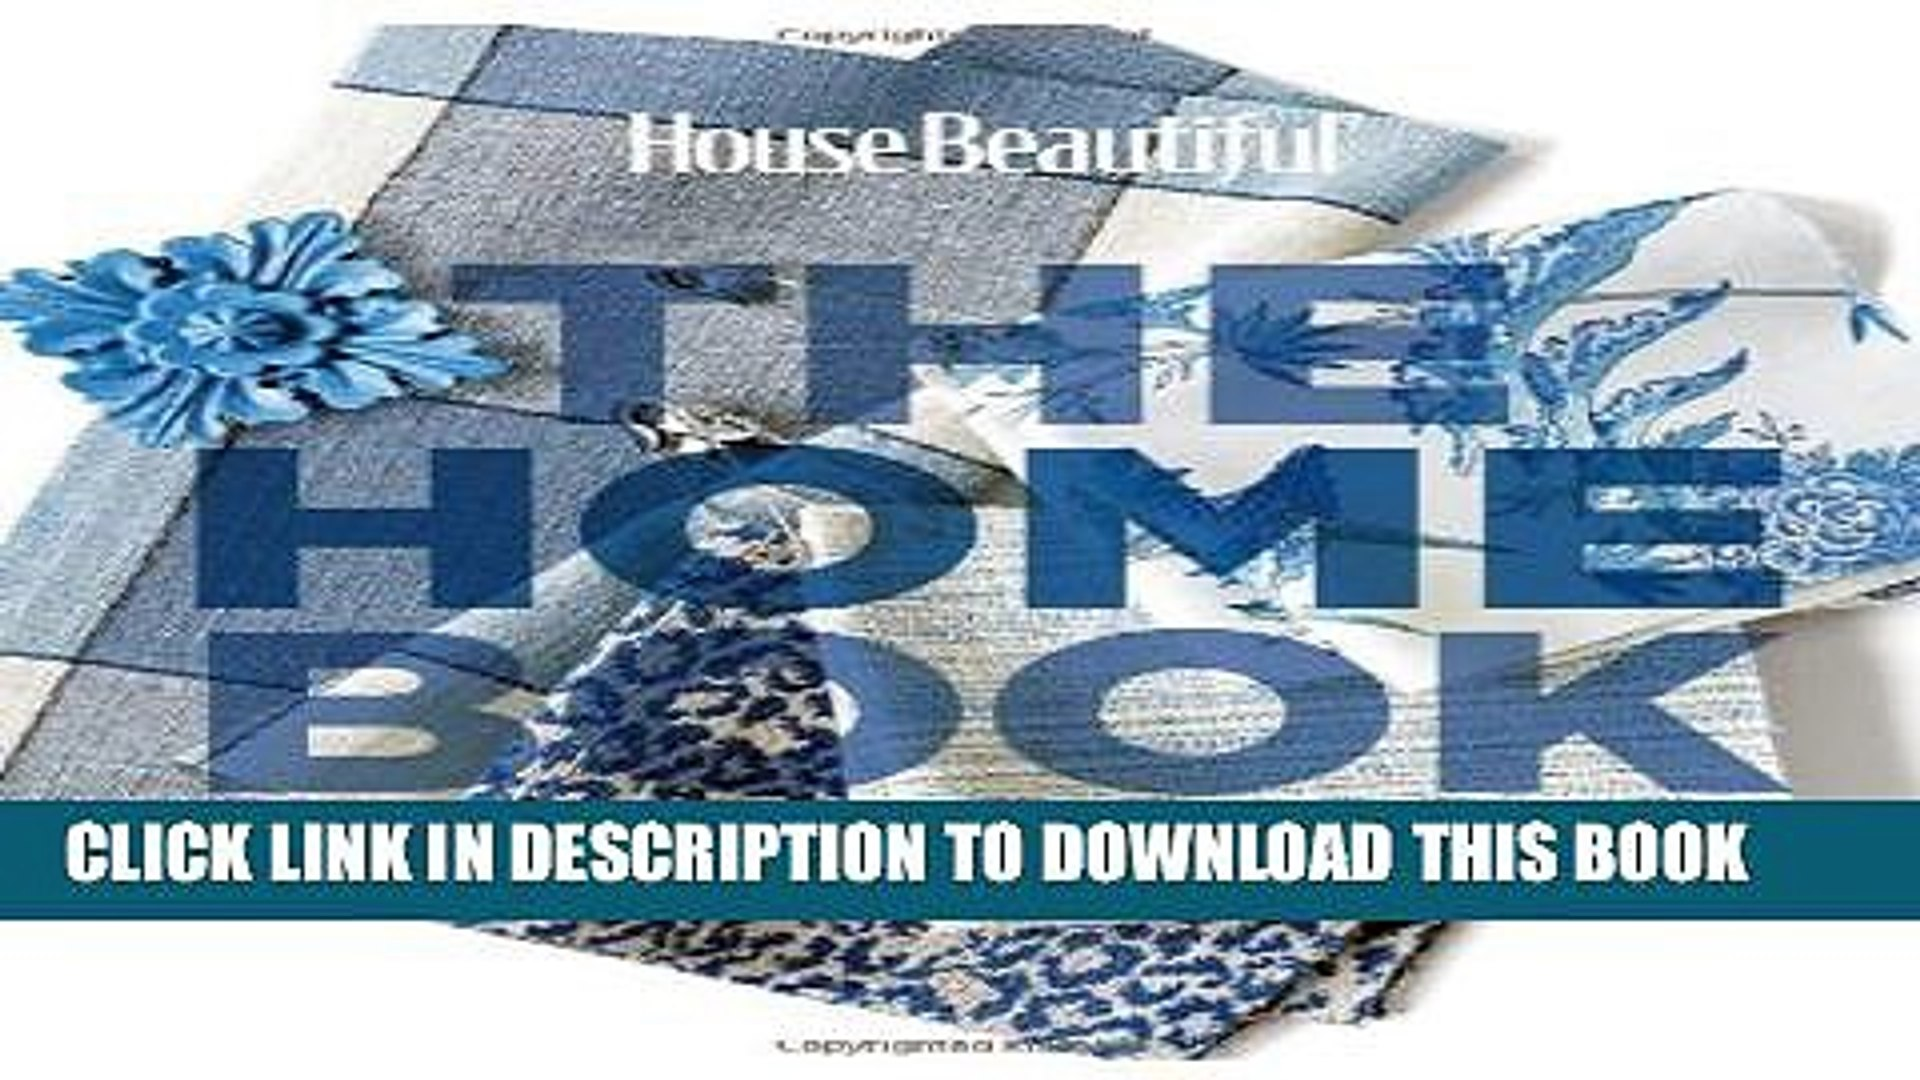 [PDF] House Beautiful The Home Book: Creating a Beautiful Home of Your Own (House Beautiful